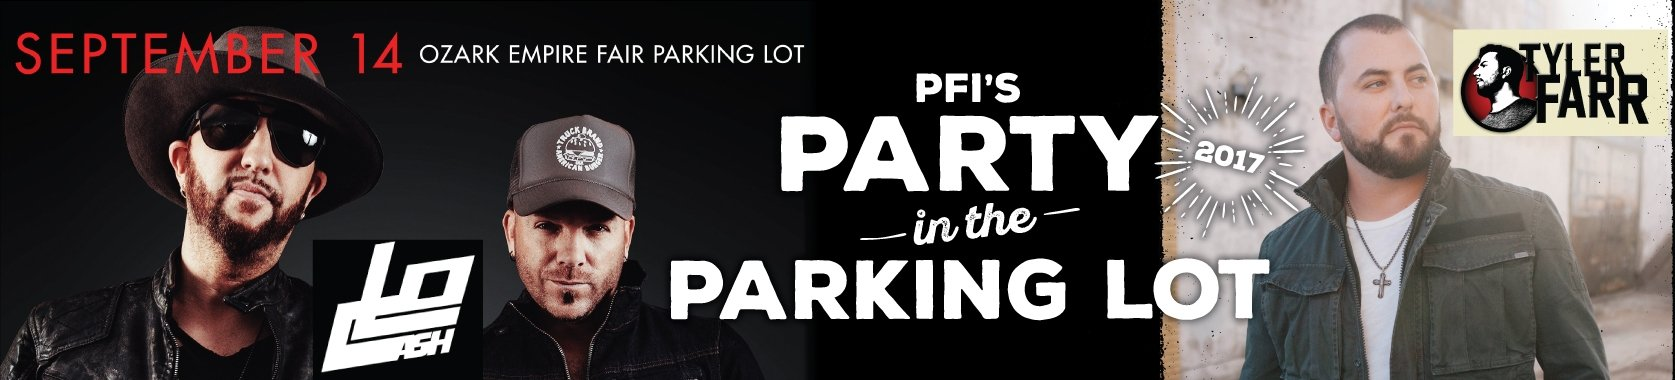 Party in the Parking Lot Announcement